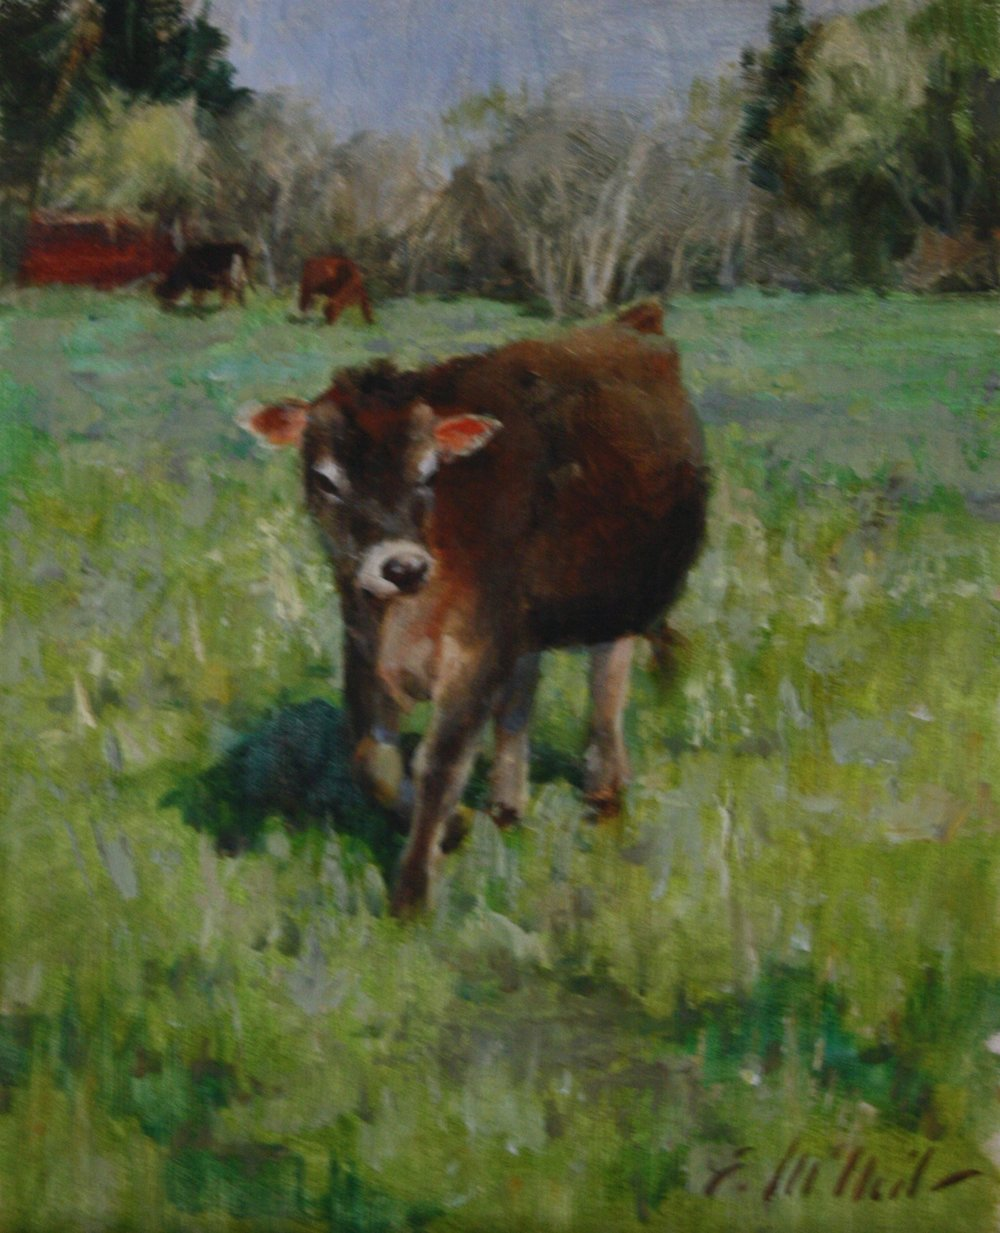 The Little Tame One 8x10%22 $350.jpg